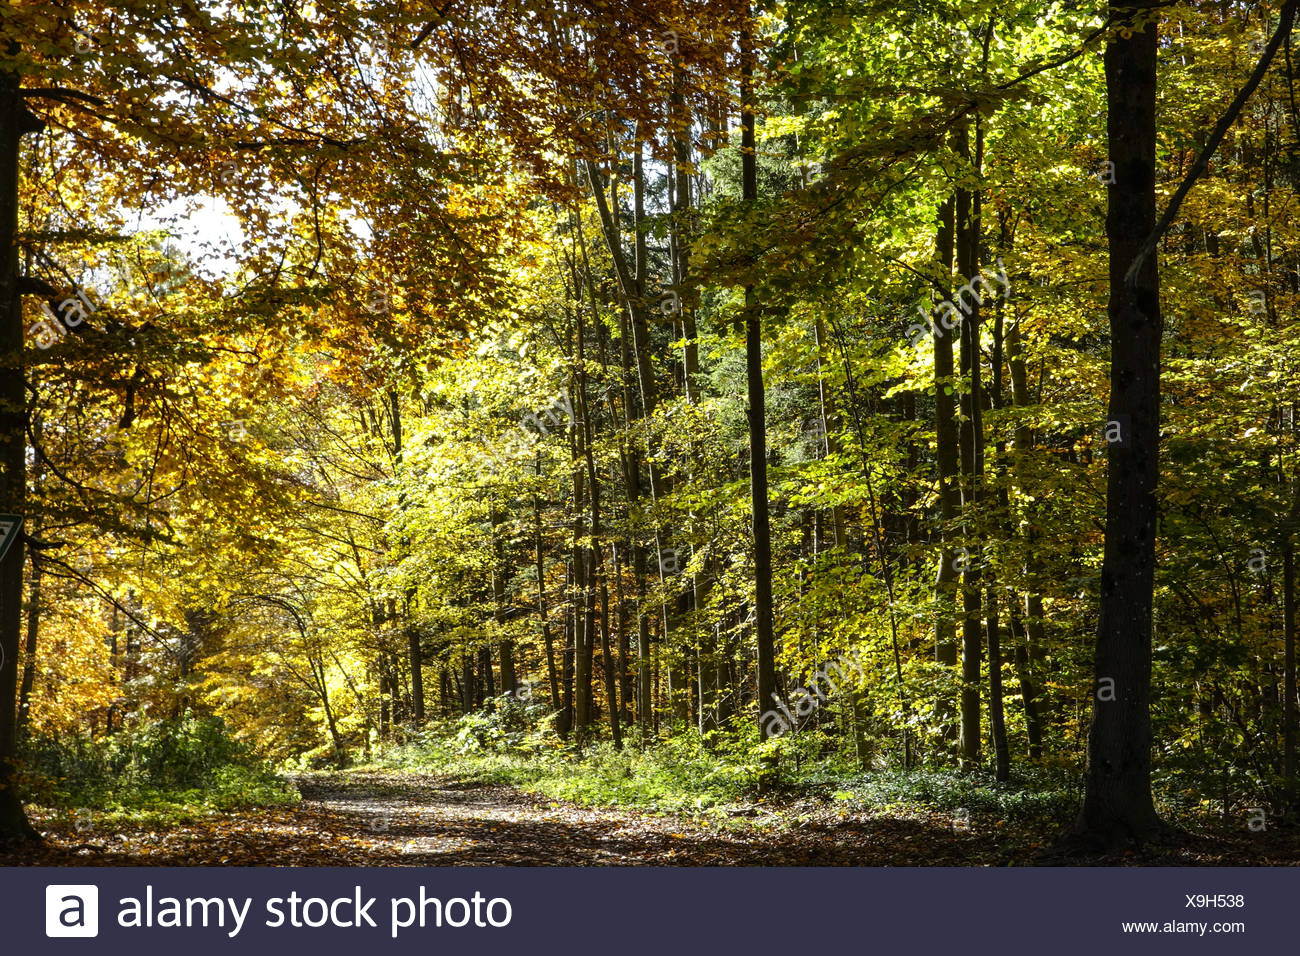 Farbiger Laubwald im Herbst, Colored leaves in autumn deciduous forest, Tree, Trees, Logs, Autumn, Colors, Fall, Foliage, Autumn - Stock Image